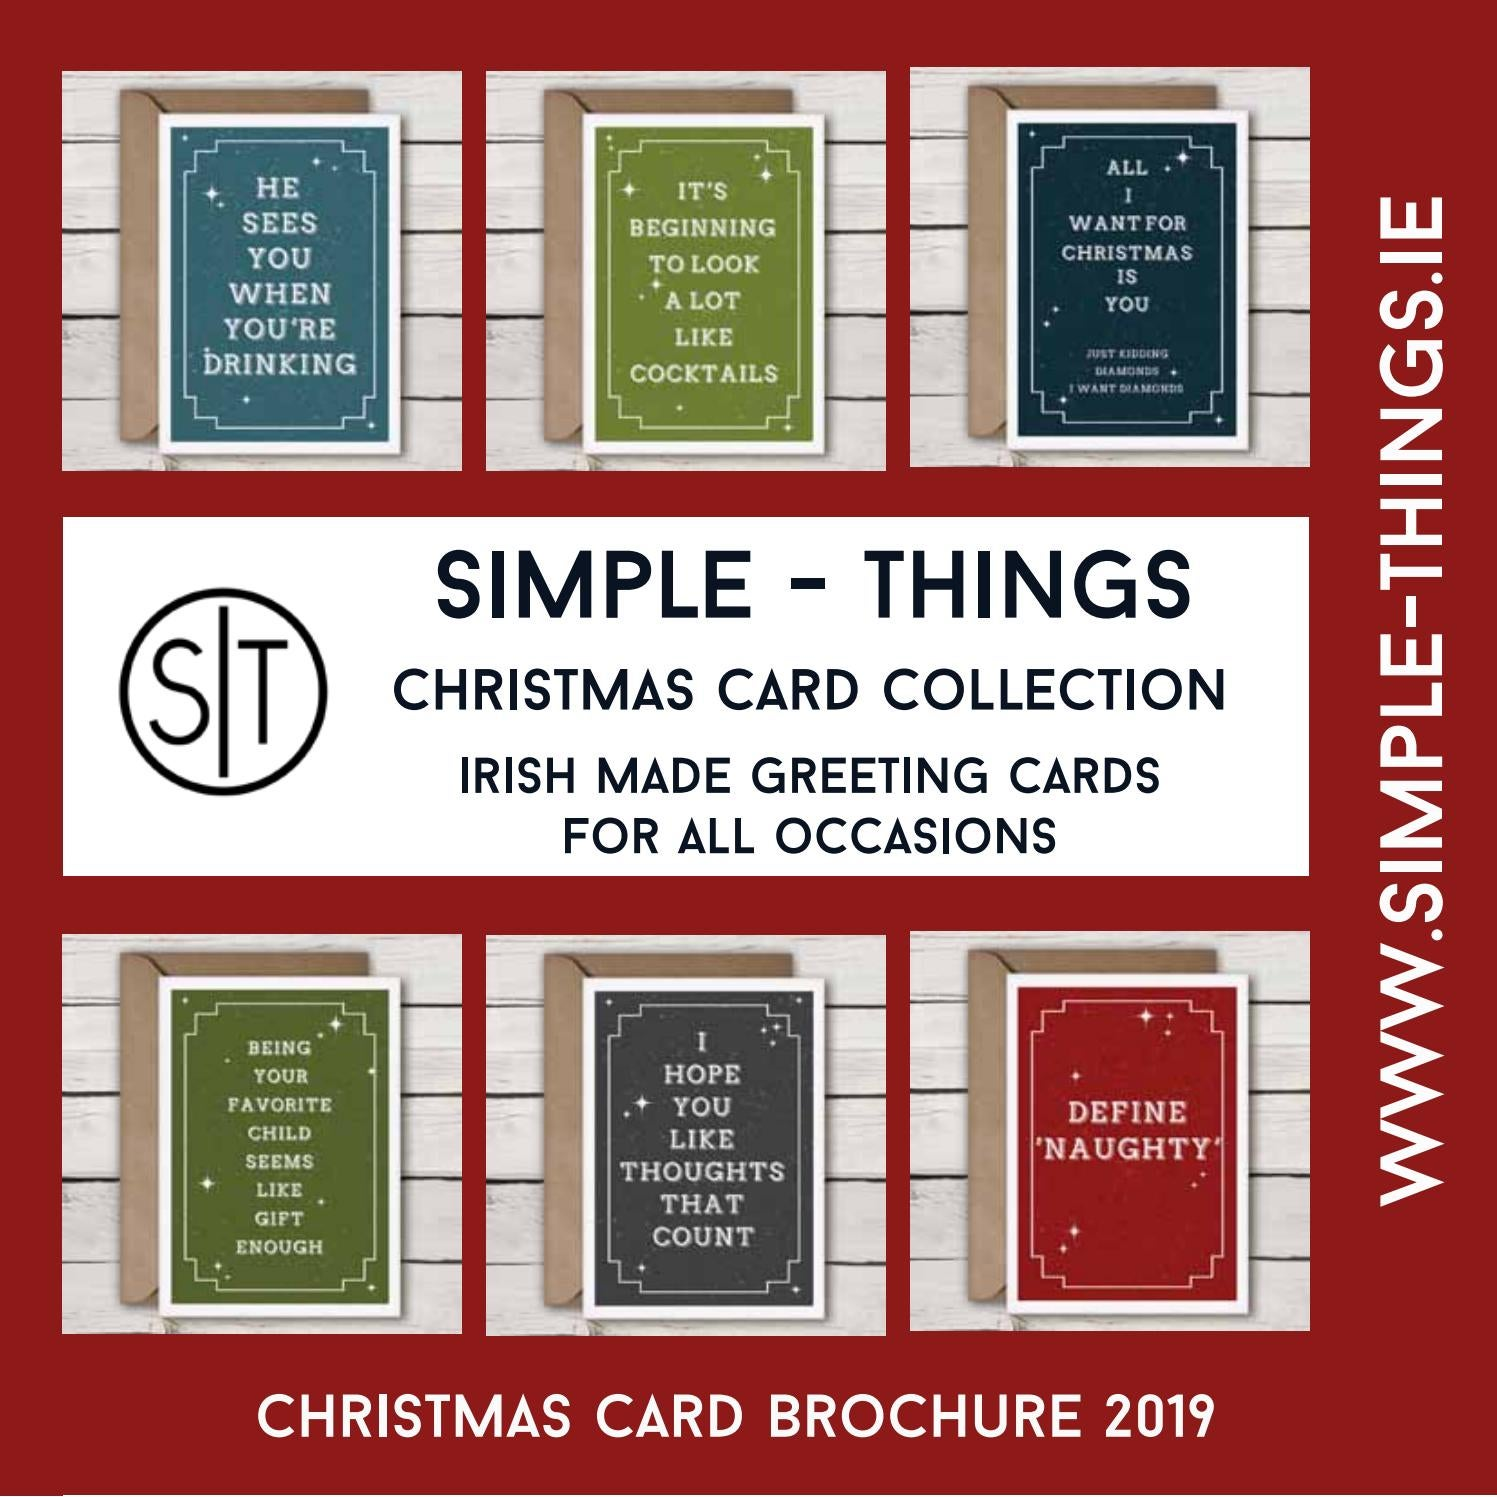 Things To Want For Christmas 2019.Simple Things Christmas Card Collection 2019 By Hanrahan